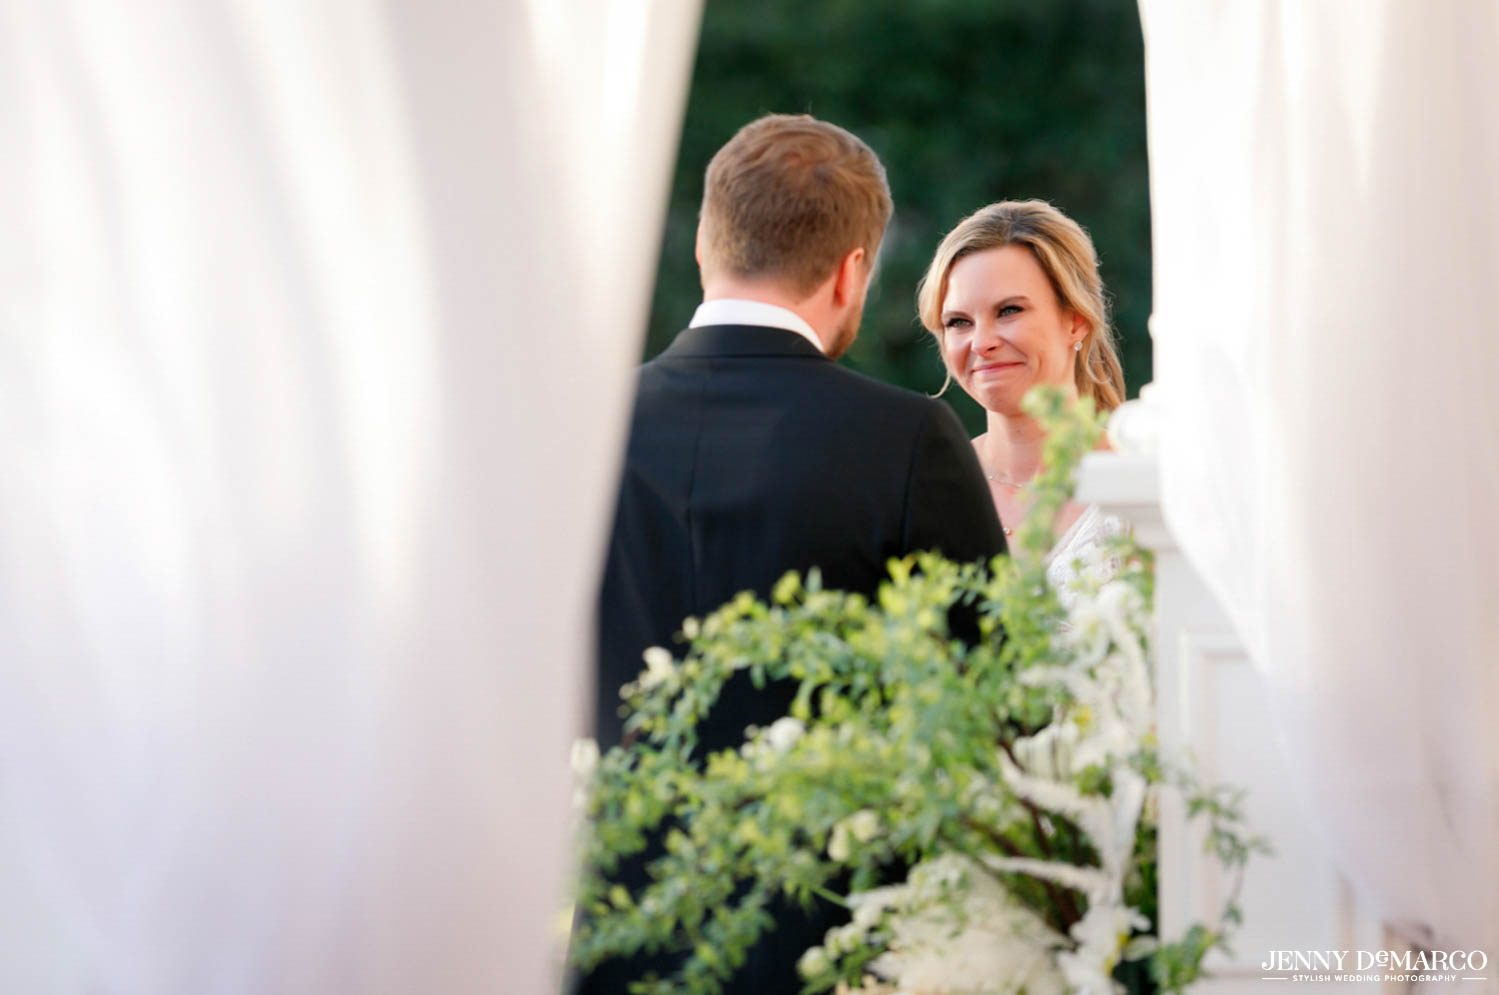 bride and groom smiling at each other in ceremony